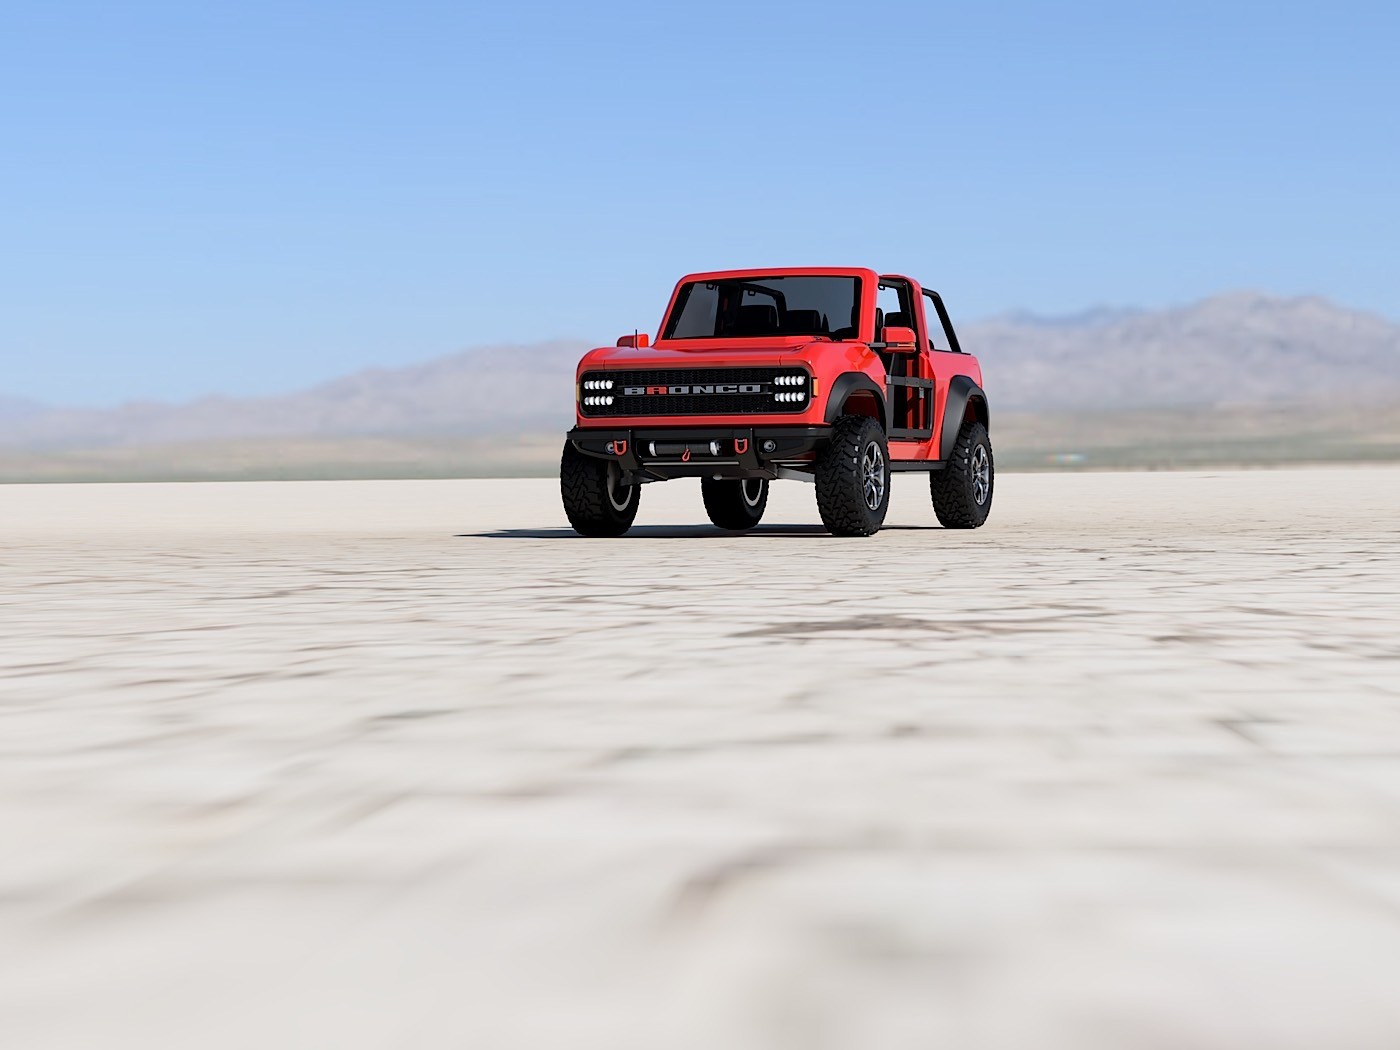 New 2021 Ford Bronco Pictures Page 3 Ar15 Com